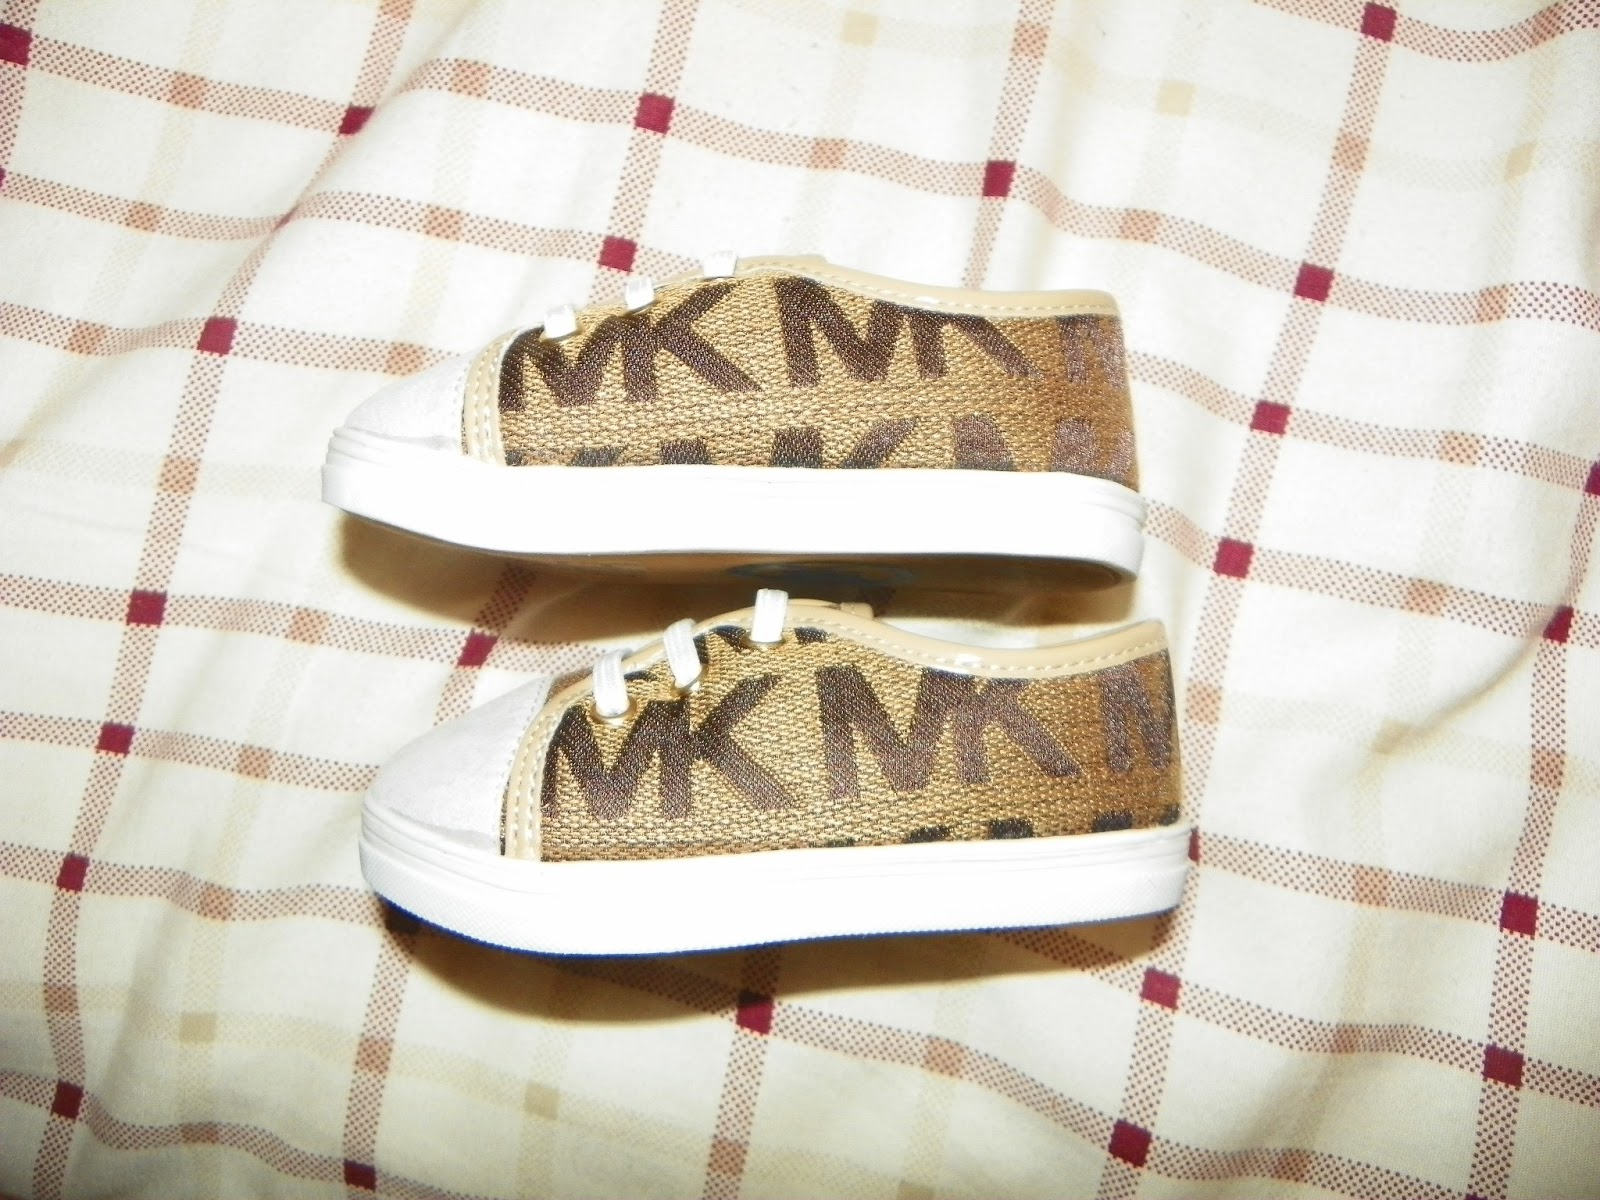 Michael Kors Infant Girls Monogram Sneakers & Giveaway The Review